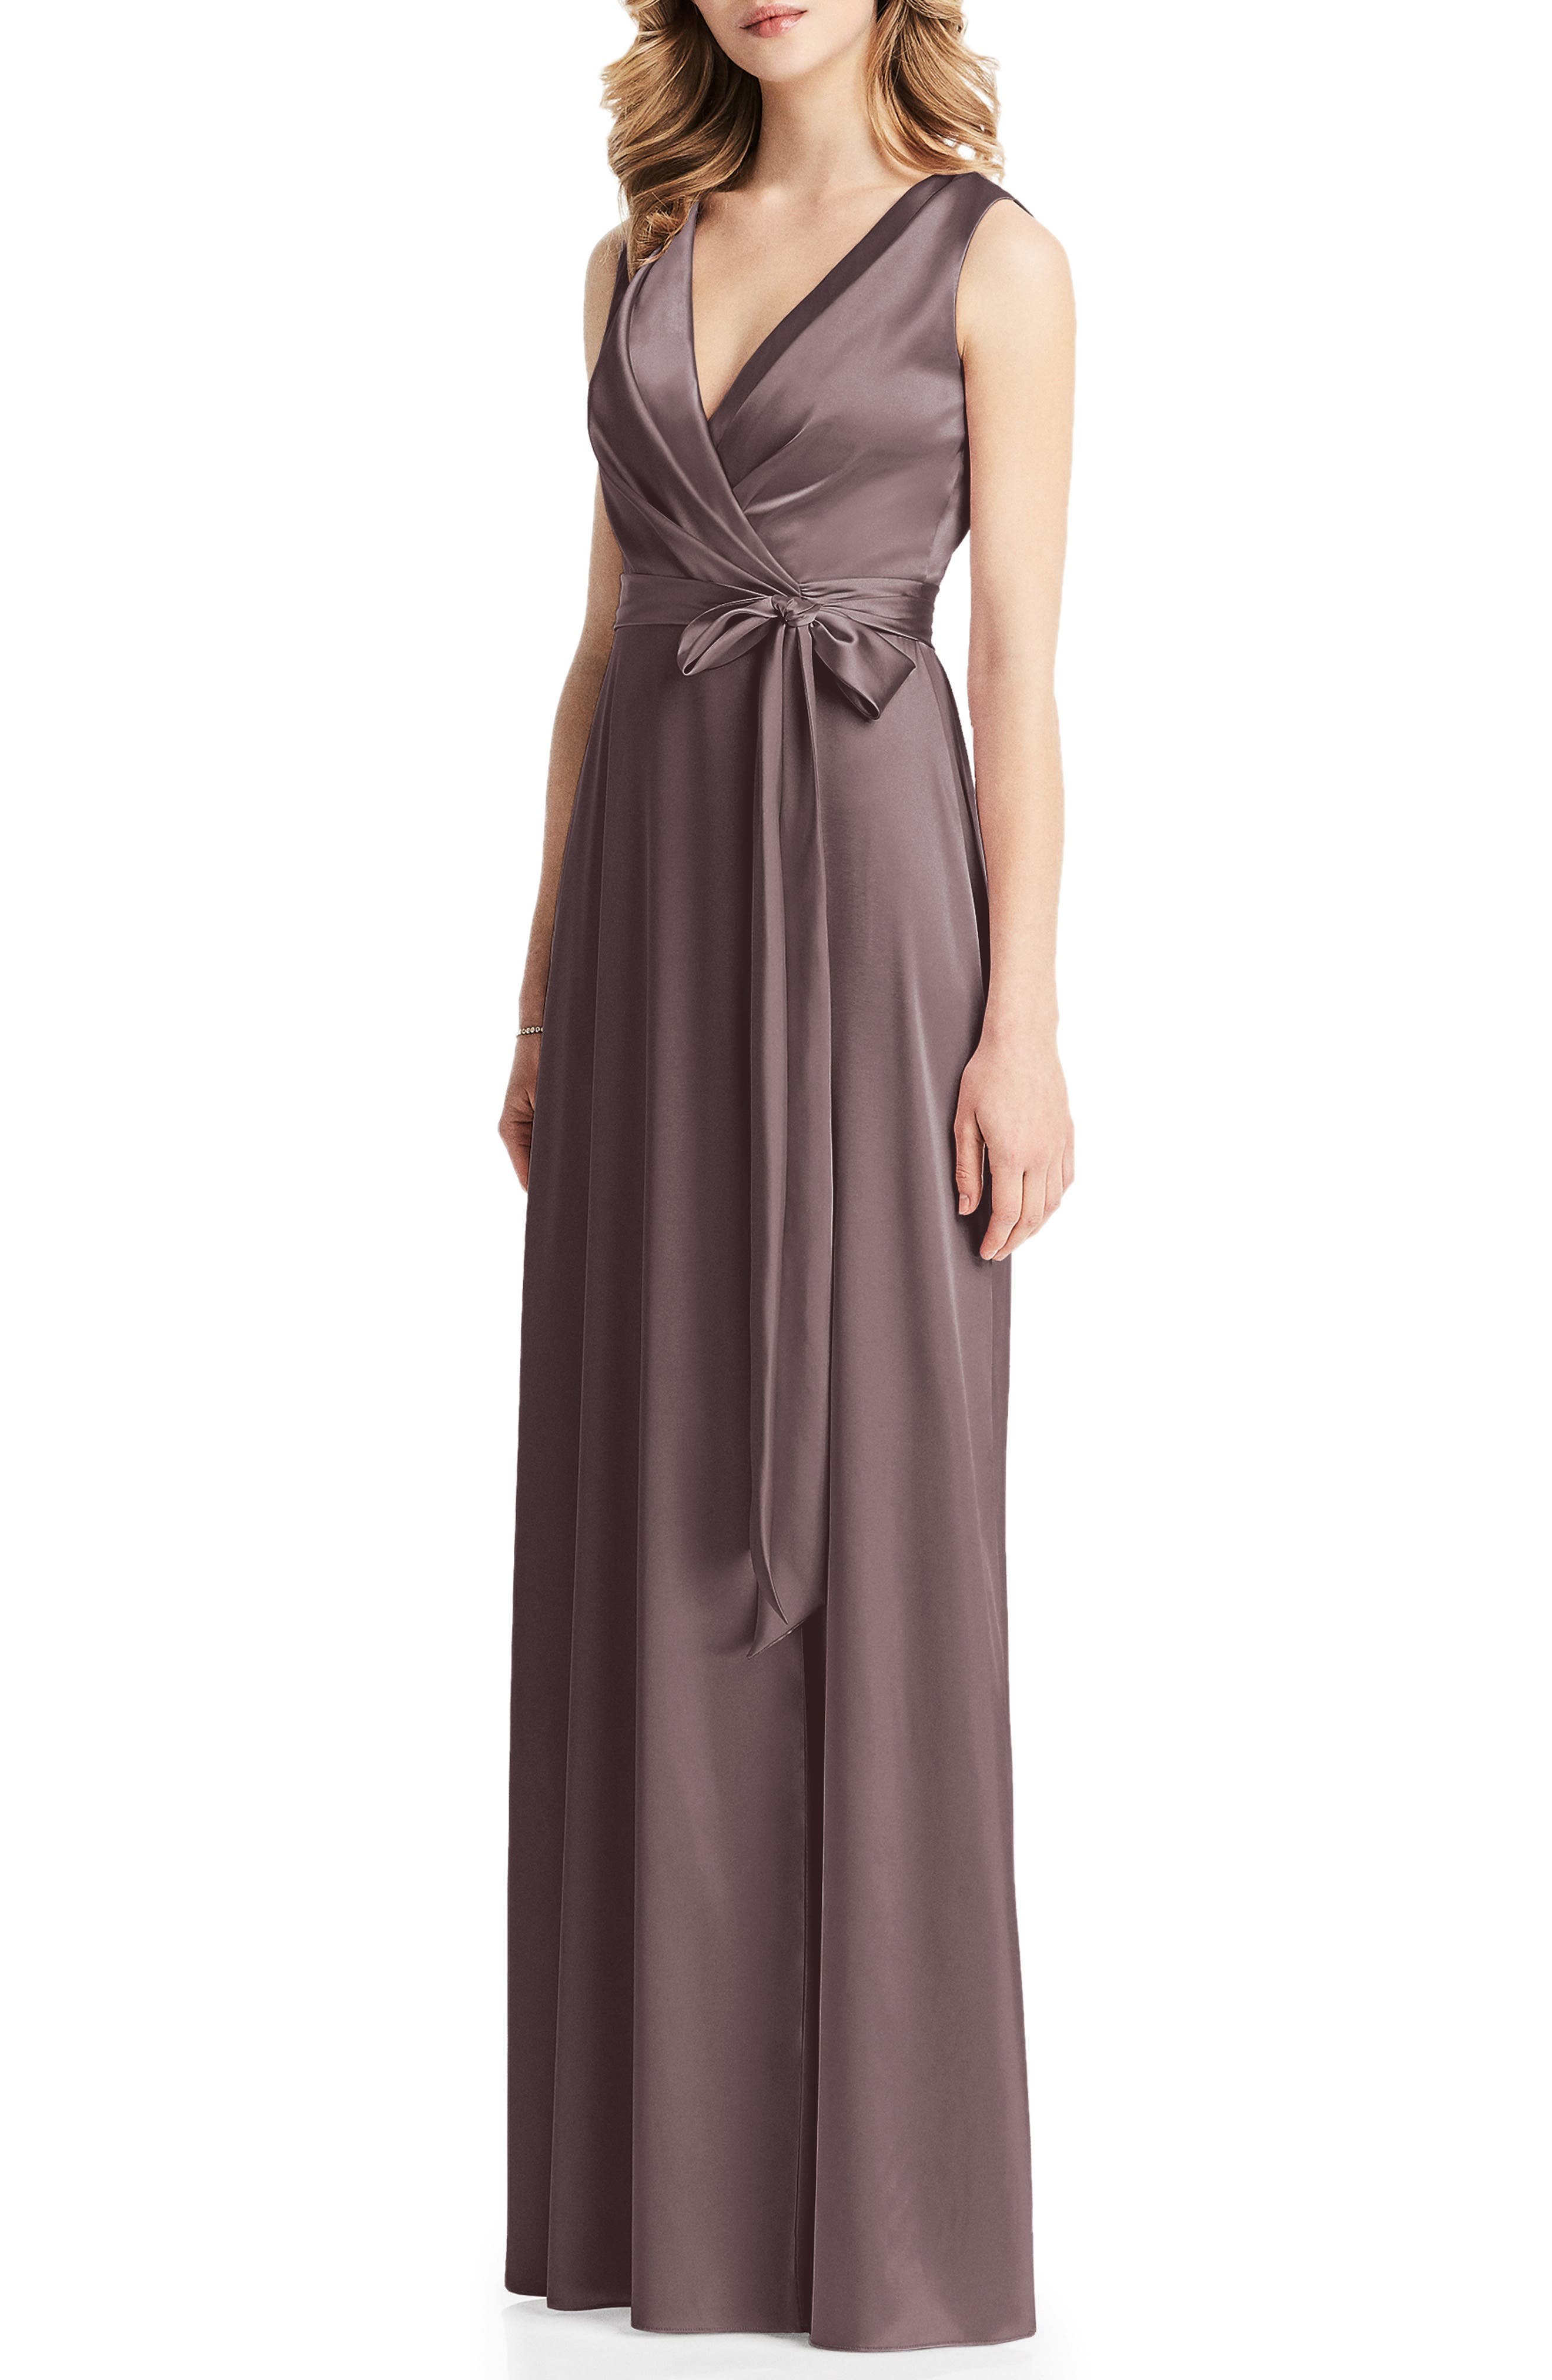 Jenny Packham Stretch Charmeuse Wrap Gown, Beige